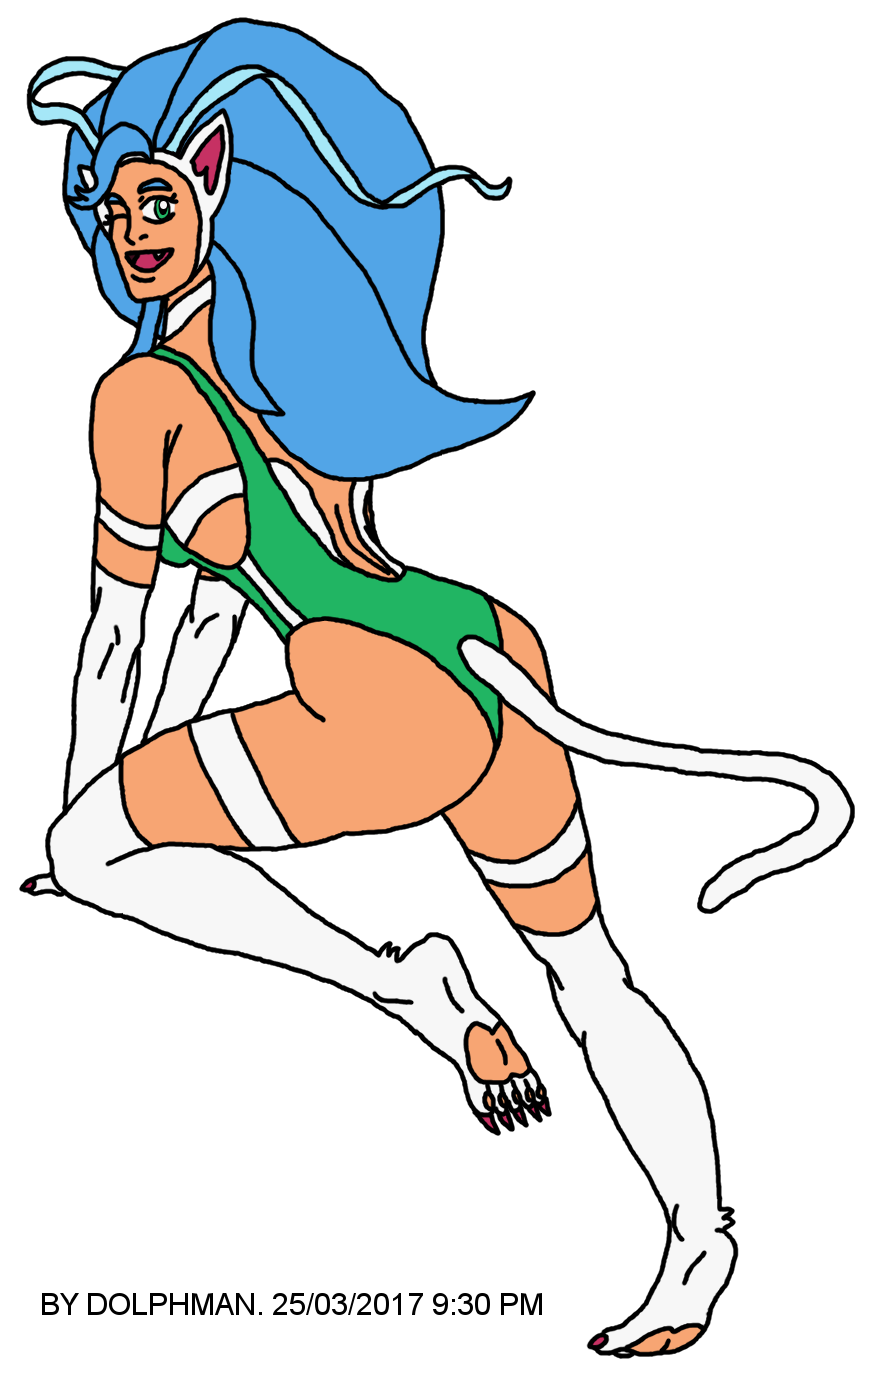 [Image: felicia_in_a_one_piece_swimsuit_by_retro...b3gfzs.png]